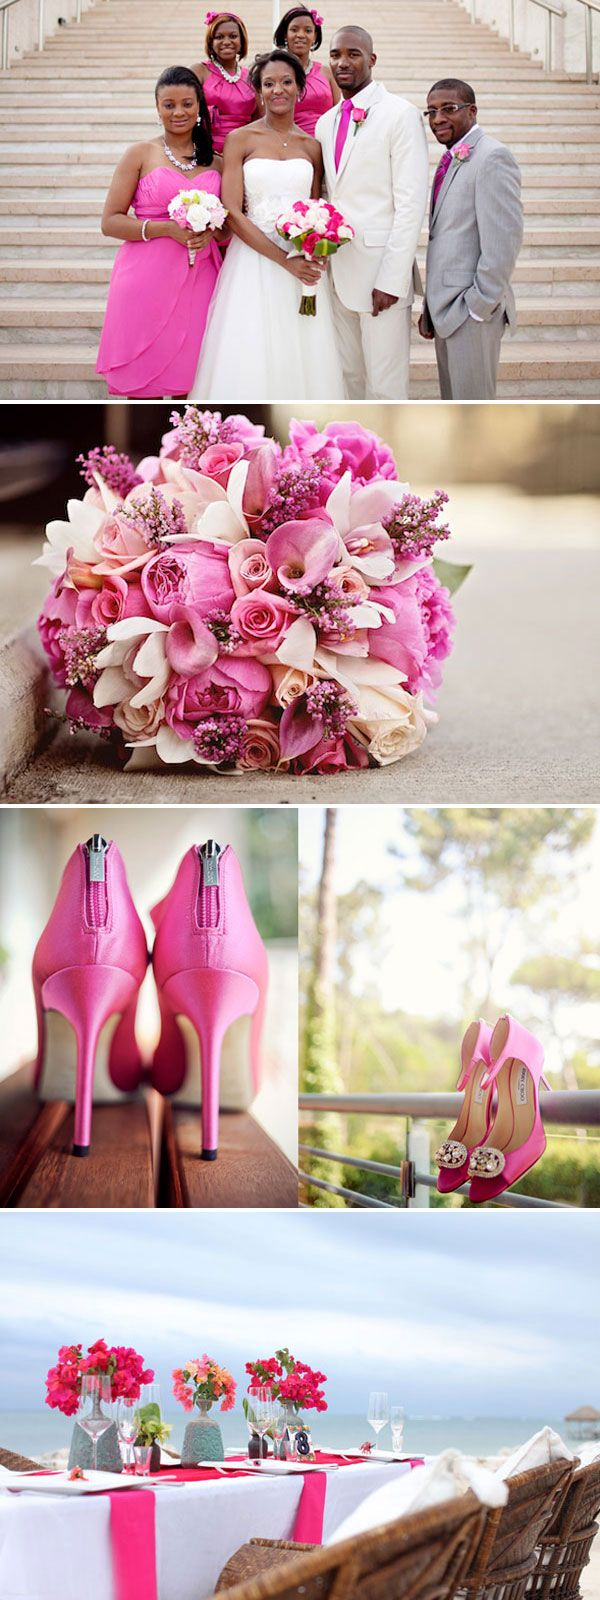 128 best More Than Bouquets images on Pinterest | Wedding ...